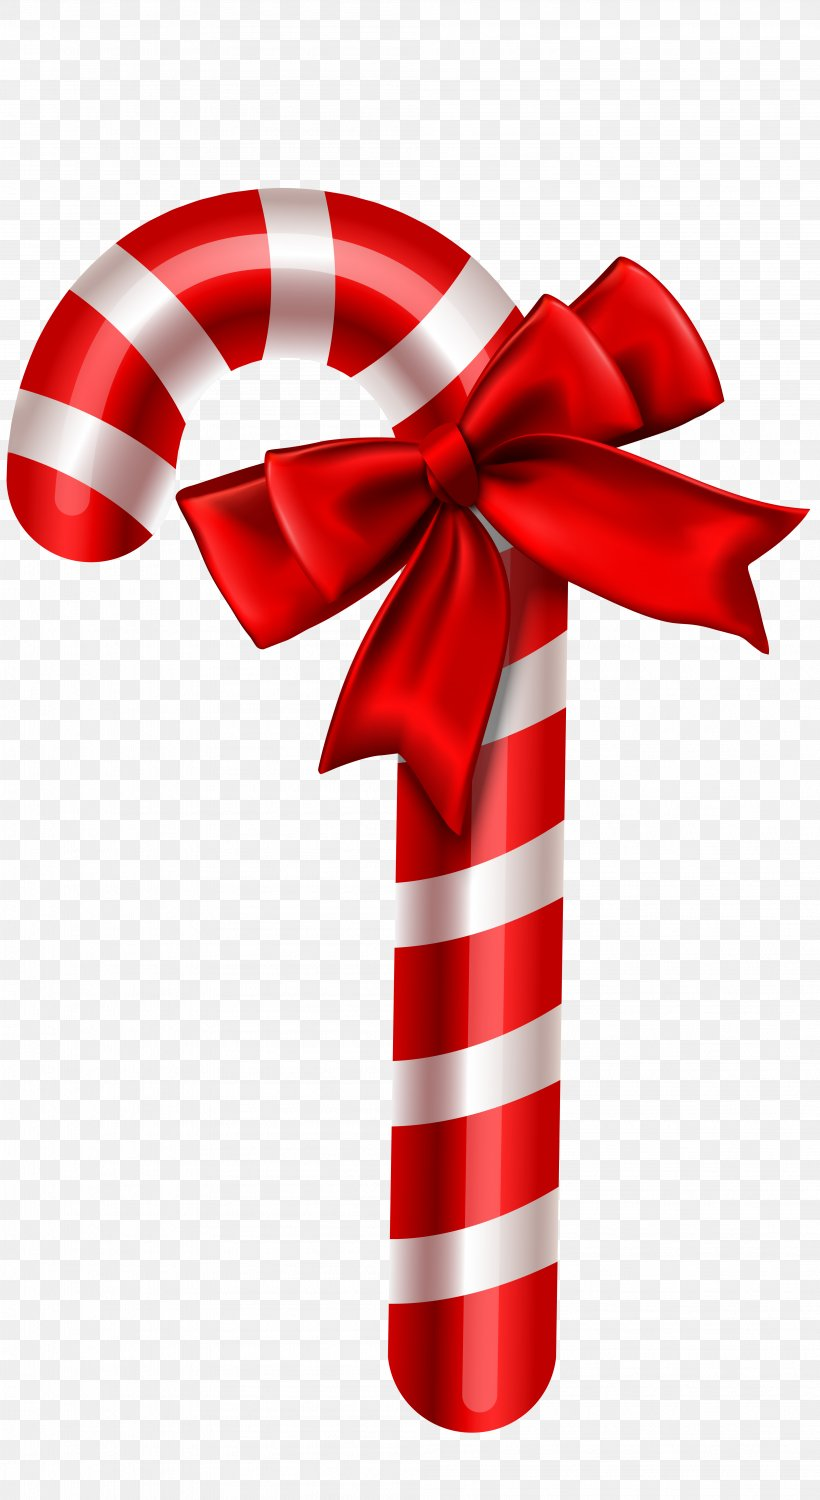 Candy Cane Christmas Ornament Clip Art, PNG, 3987x7294px, Candy Cane, Candy, Chocolate, Christmas, Christmas Decoration Download Free